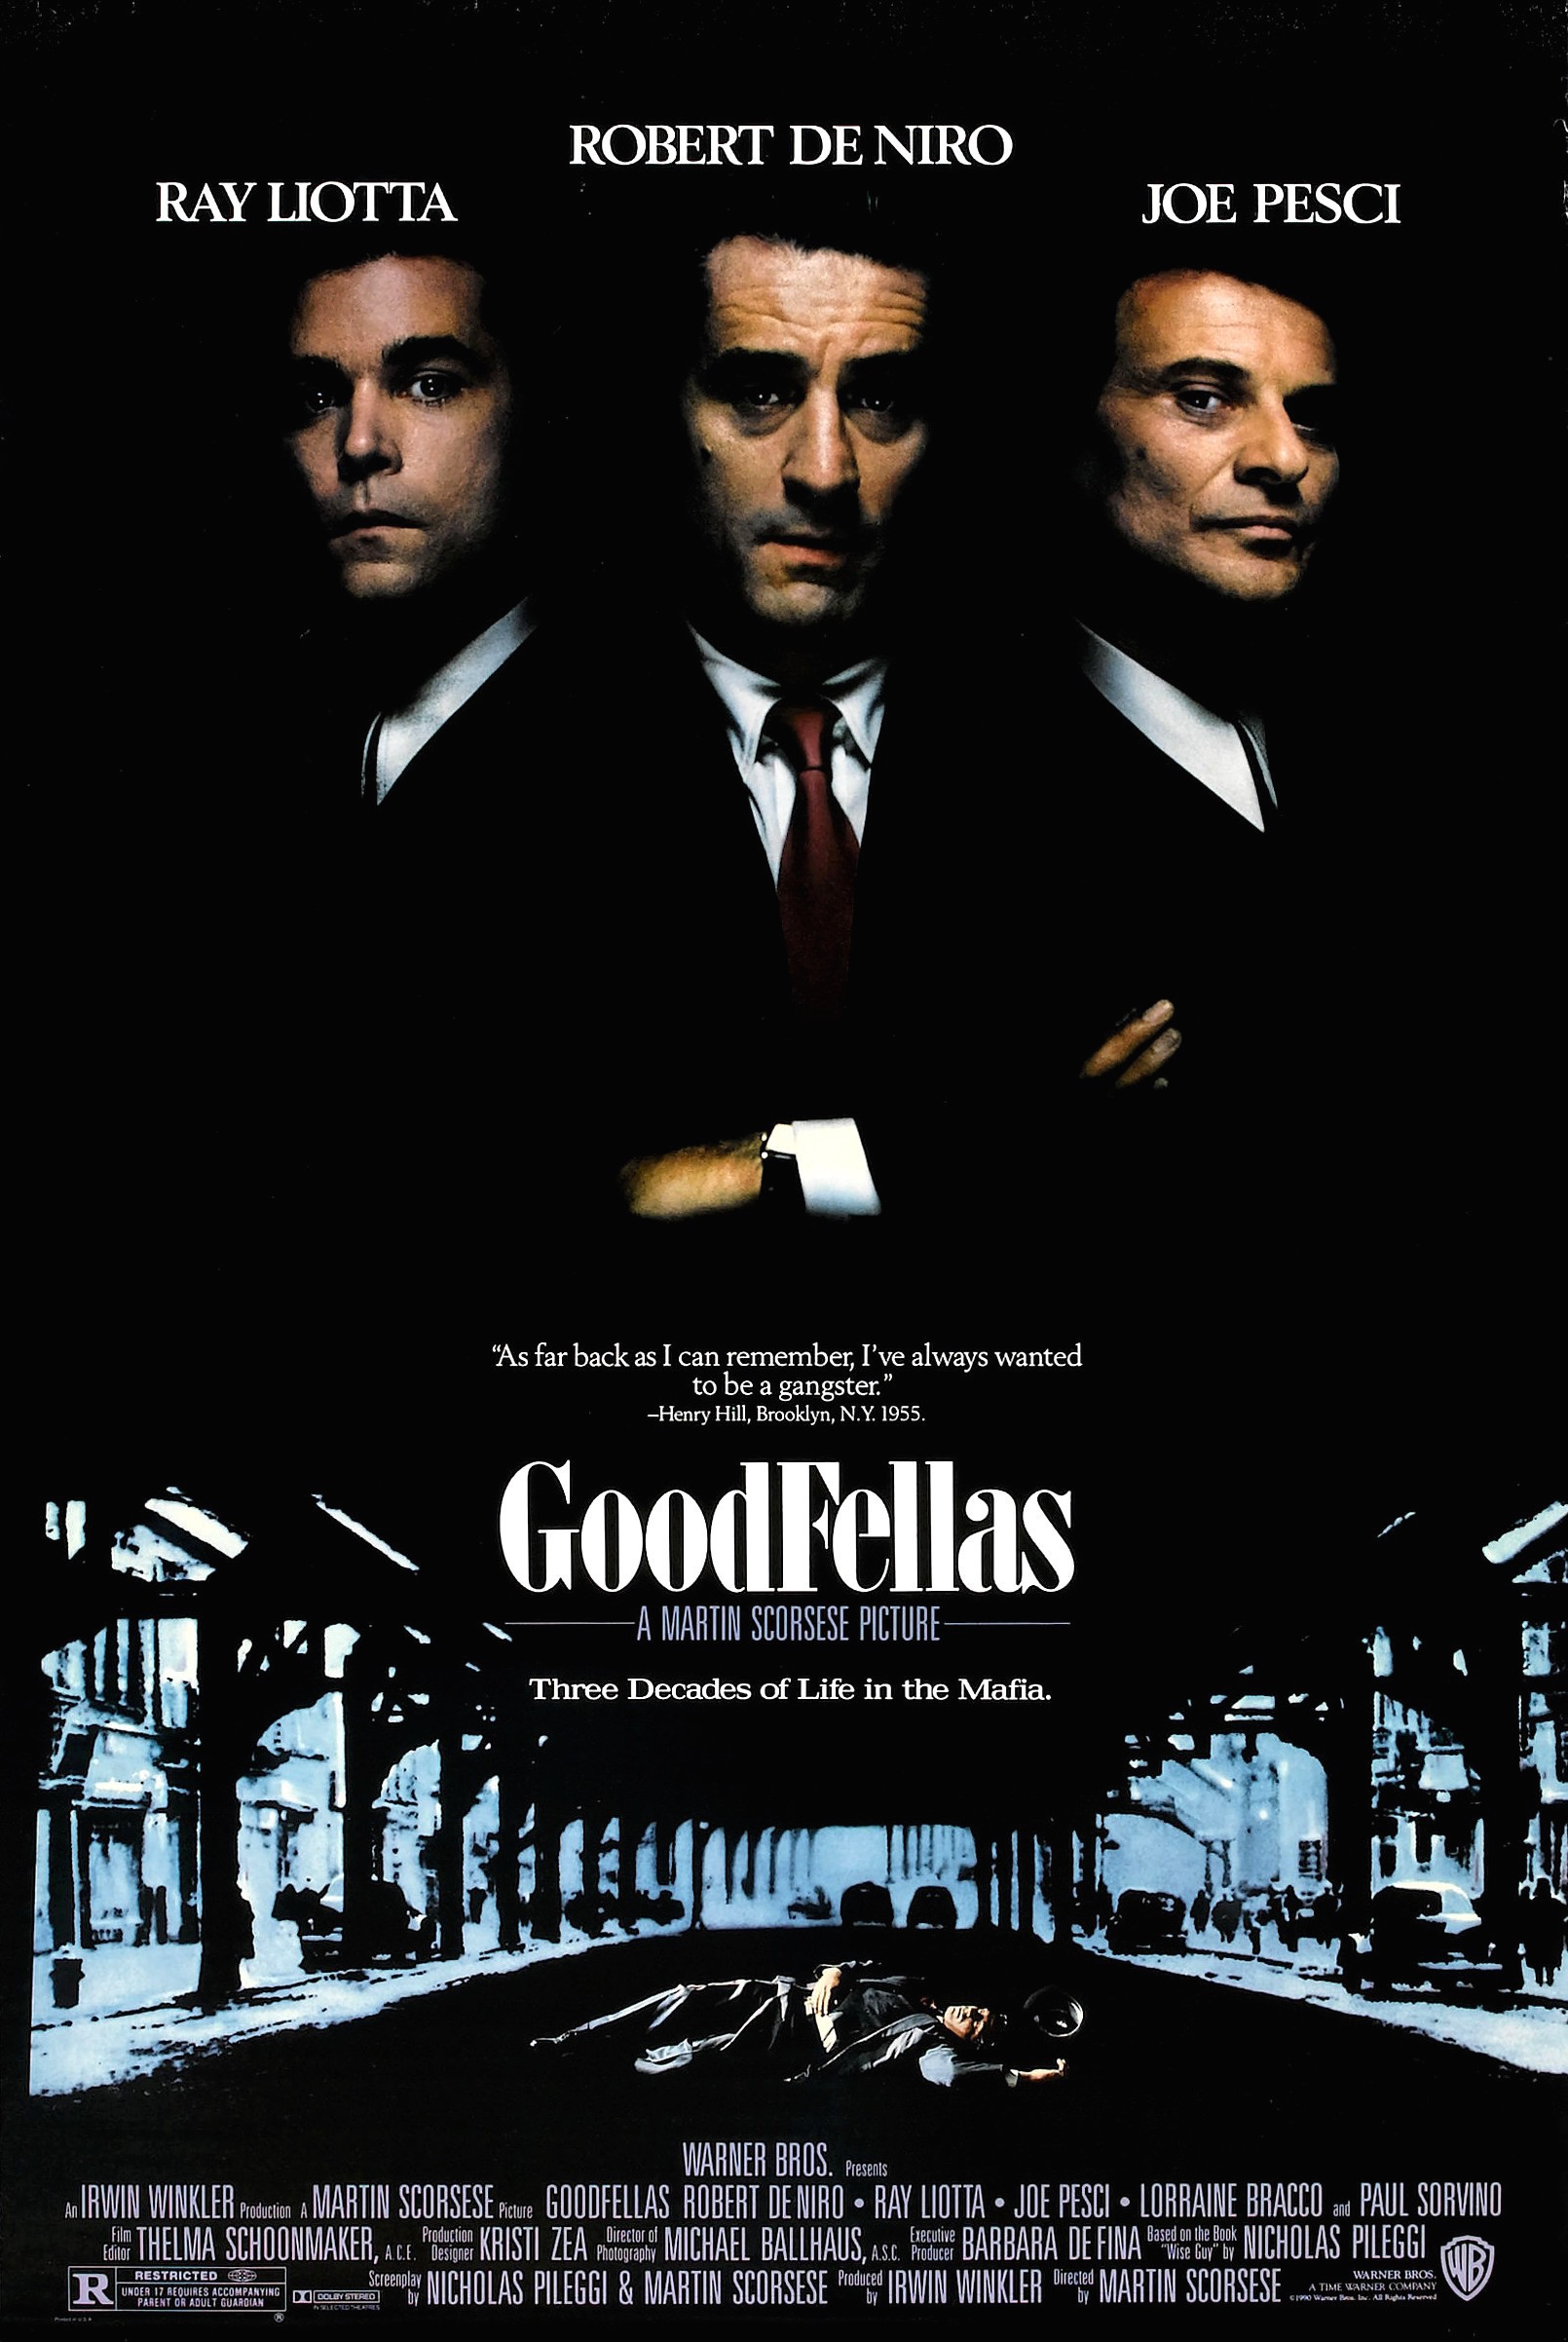 10 Things That Will Change the Way You See 'Goodfellas'